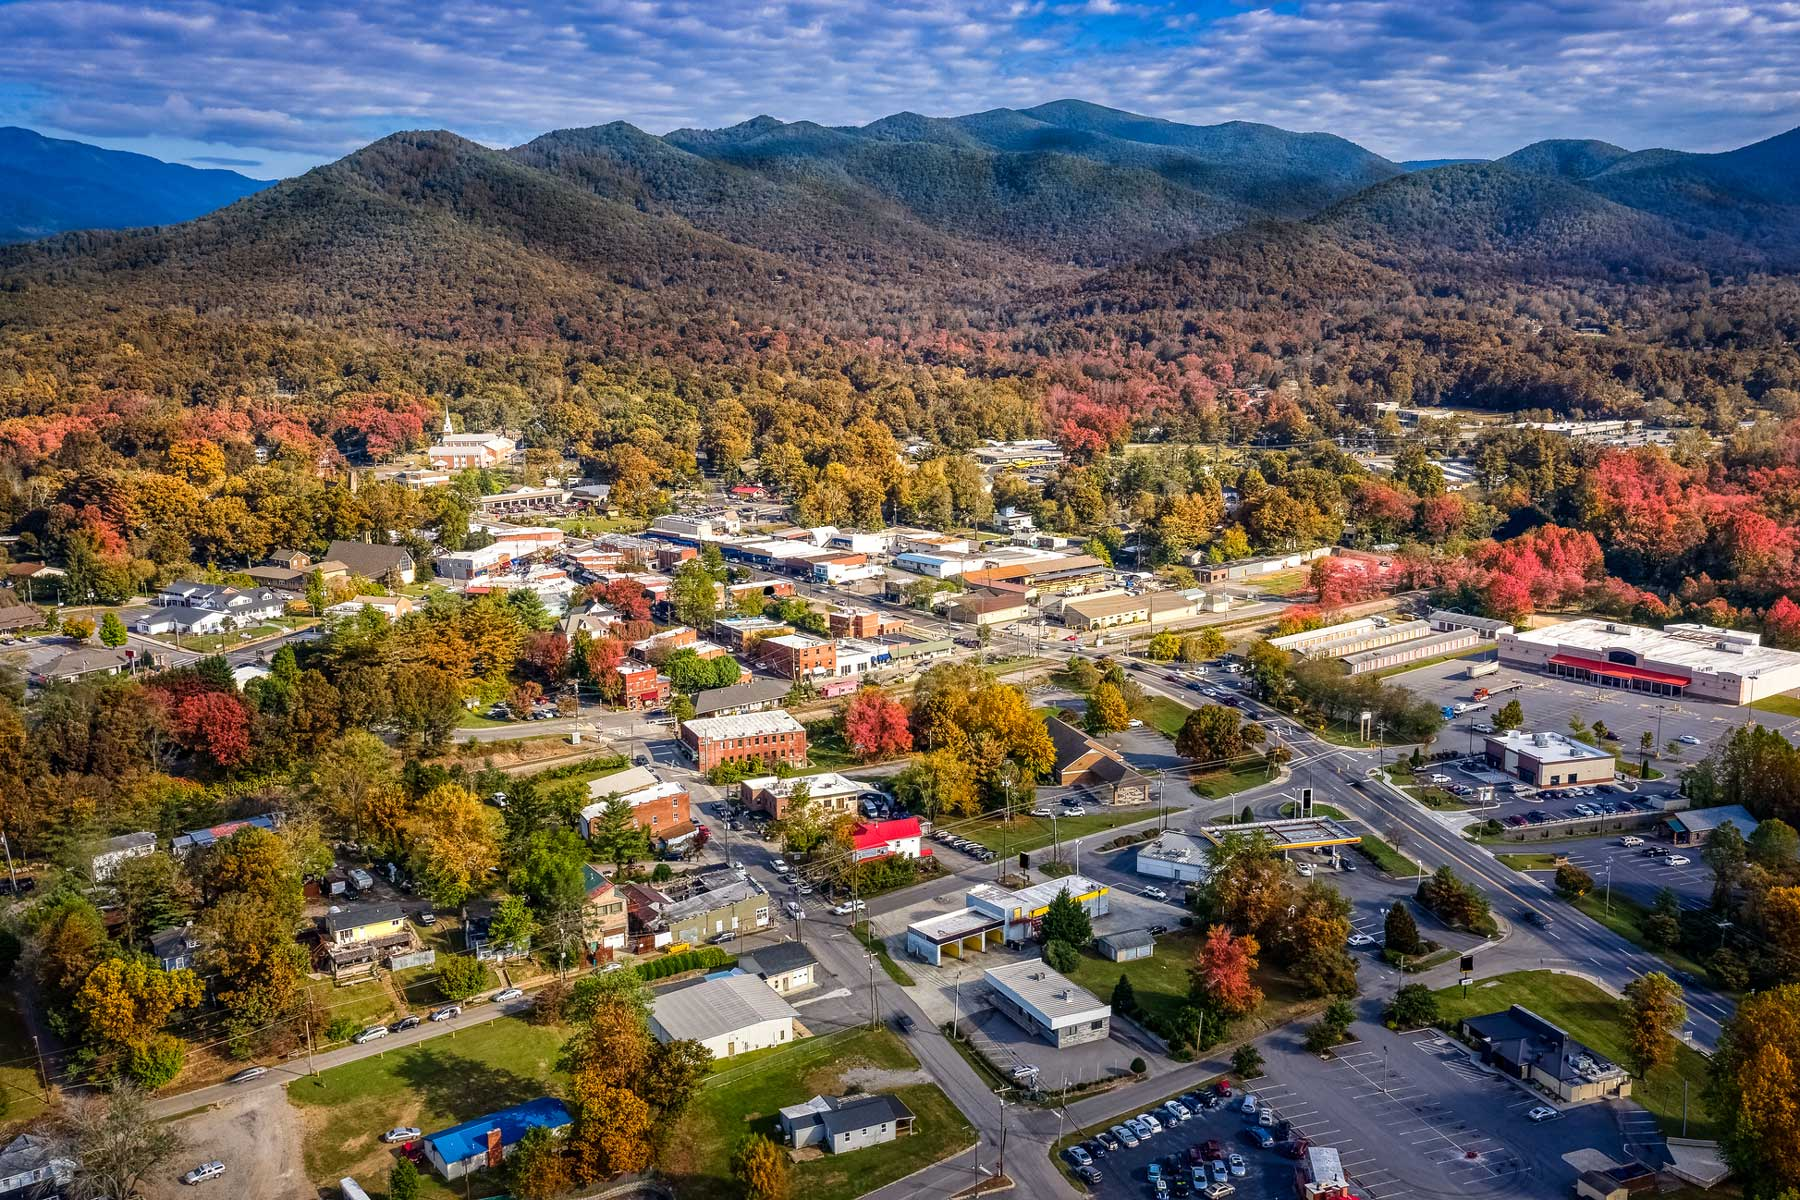 Aerial view picturesque Asheville neighborhood during the Fall with colors starting to show